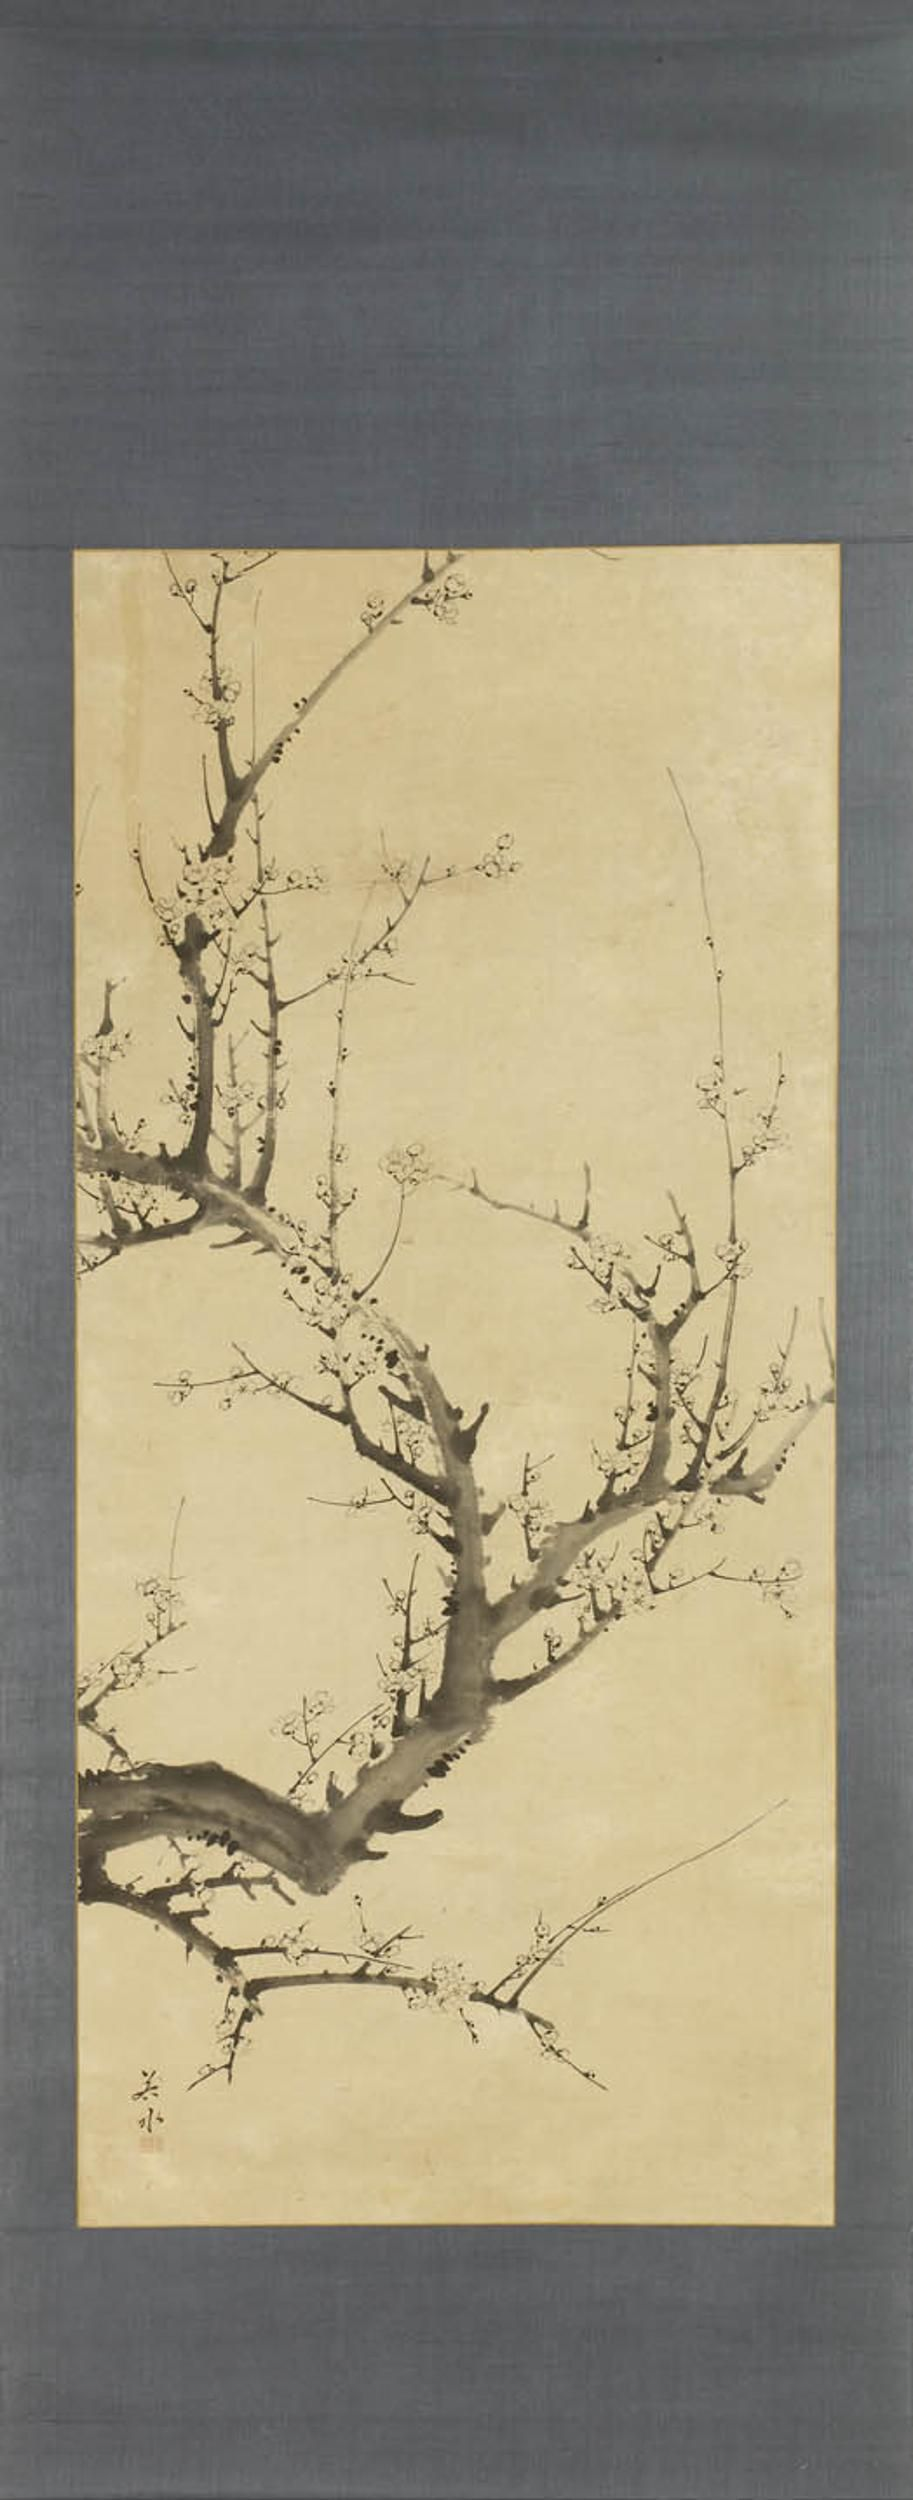 A paper kakemono (hanging scroll) painted with white ume (plum) blossoms in winter.  Signed: Jakusui sha (painted by Jakusui) - Seals:  Top: Ken Bottom: Jun - Japan 19th century Edo period